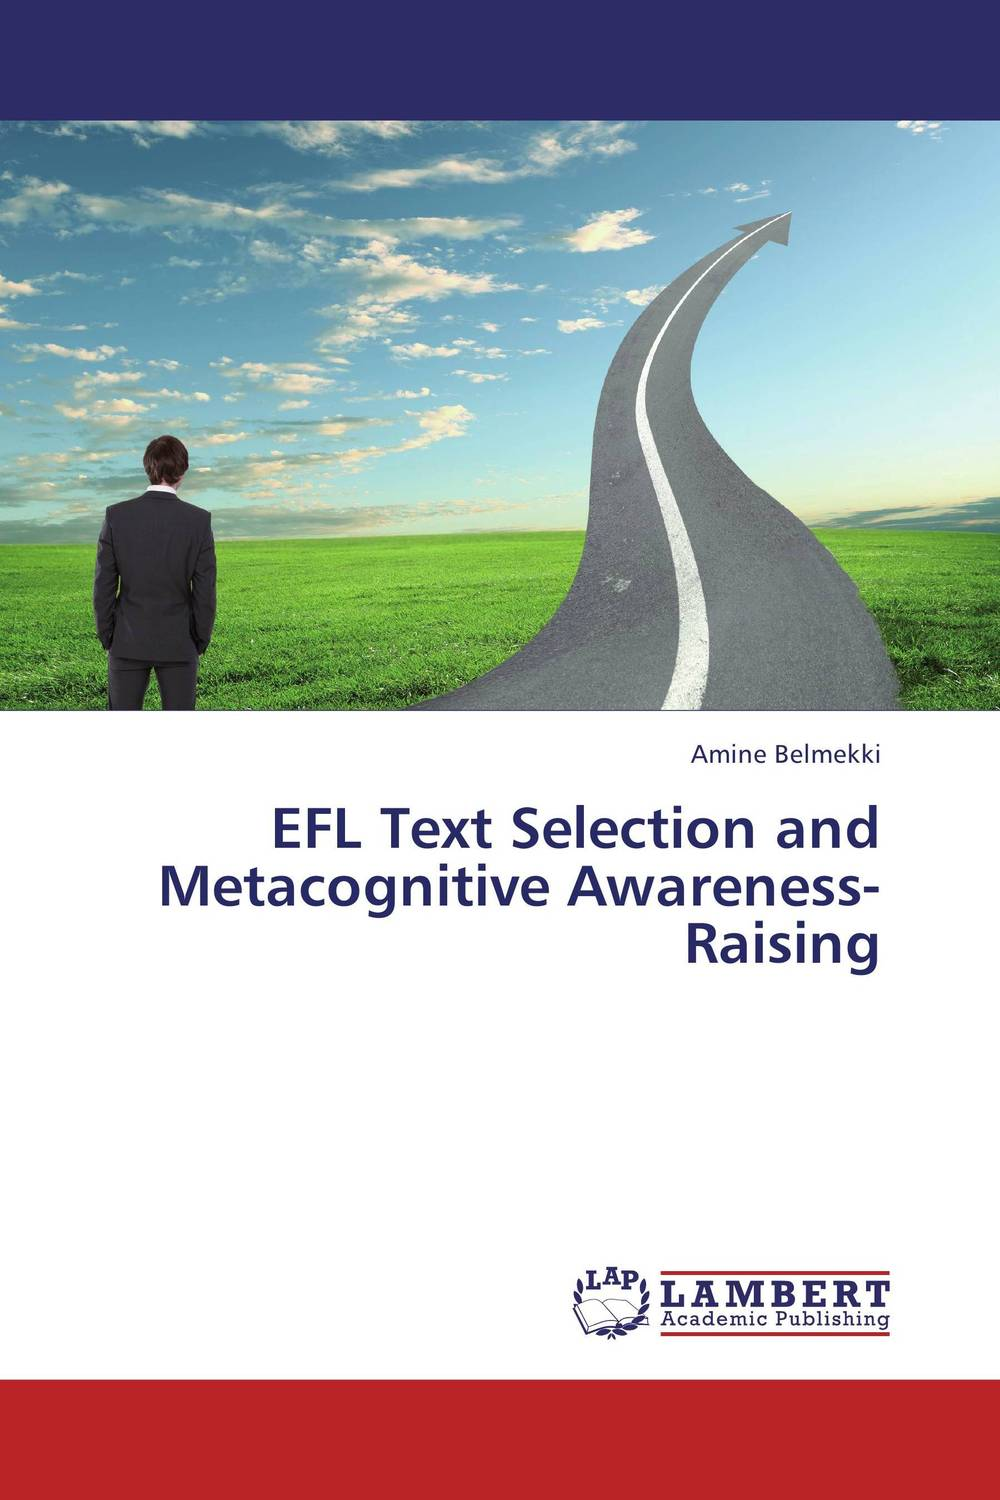 EFL Text Selection and Metacognitive Awareness-Raising cultural and linguistic hybridity in postcolonial text